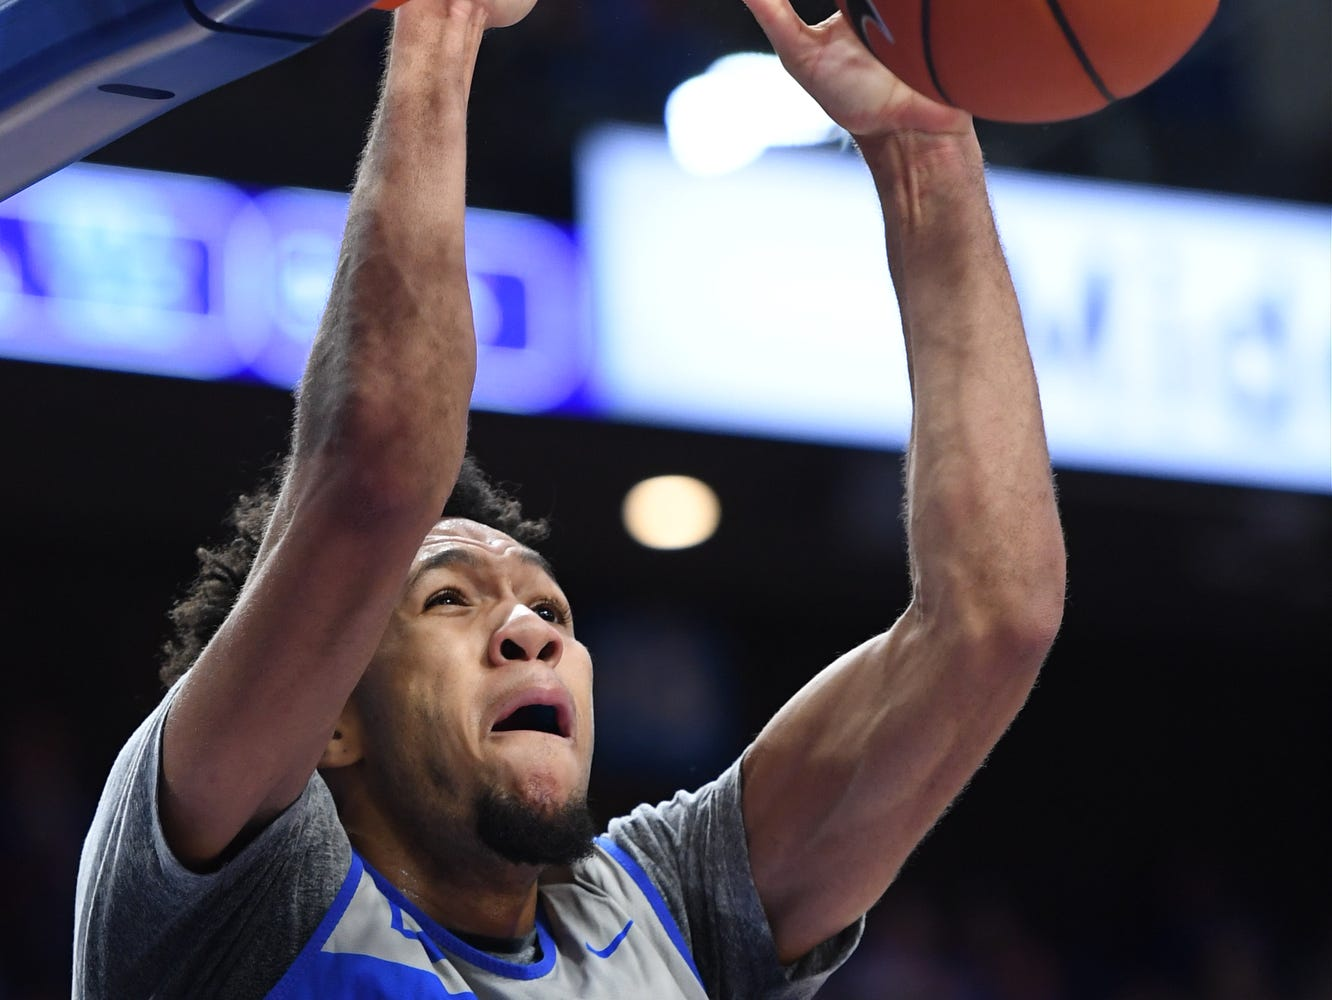 UK F EJ Montgomery dunks during the University of Kentucky mens basketball Blue/White game at Rupp Arena in Lexington, Kentucky on Sunday, October 21, 2018.